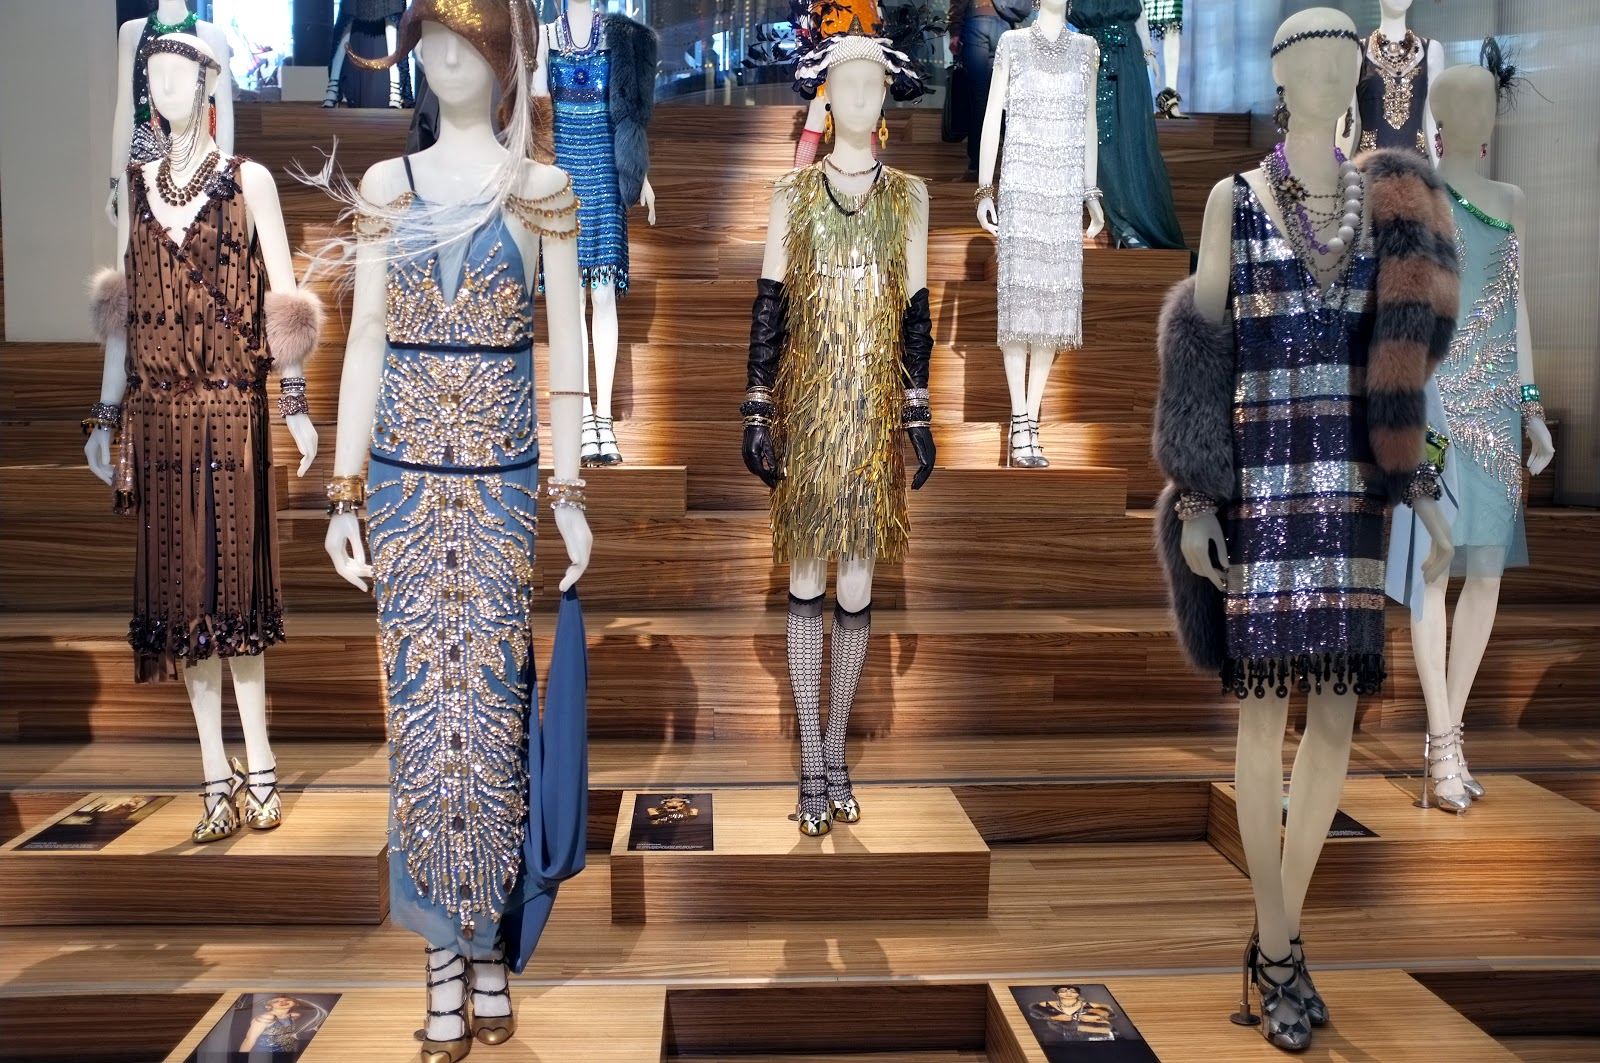 Great Gatsby Costumes Exhibited at Prada Soho